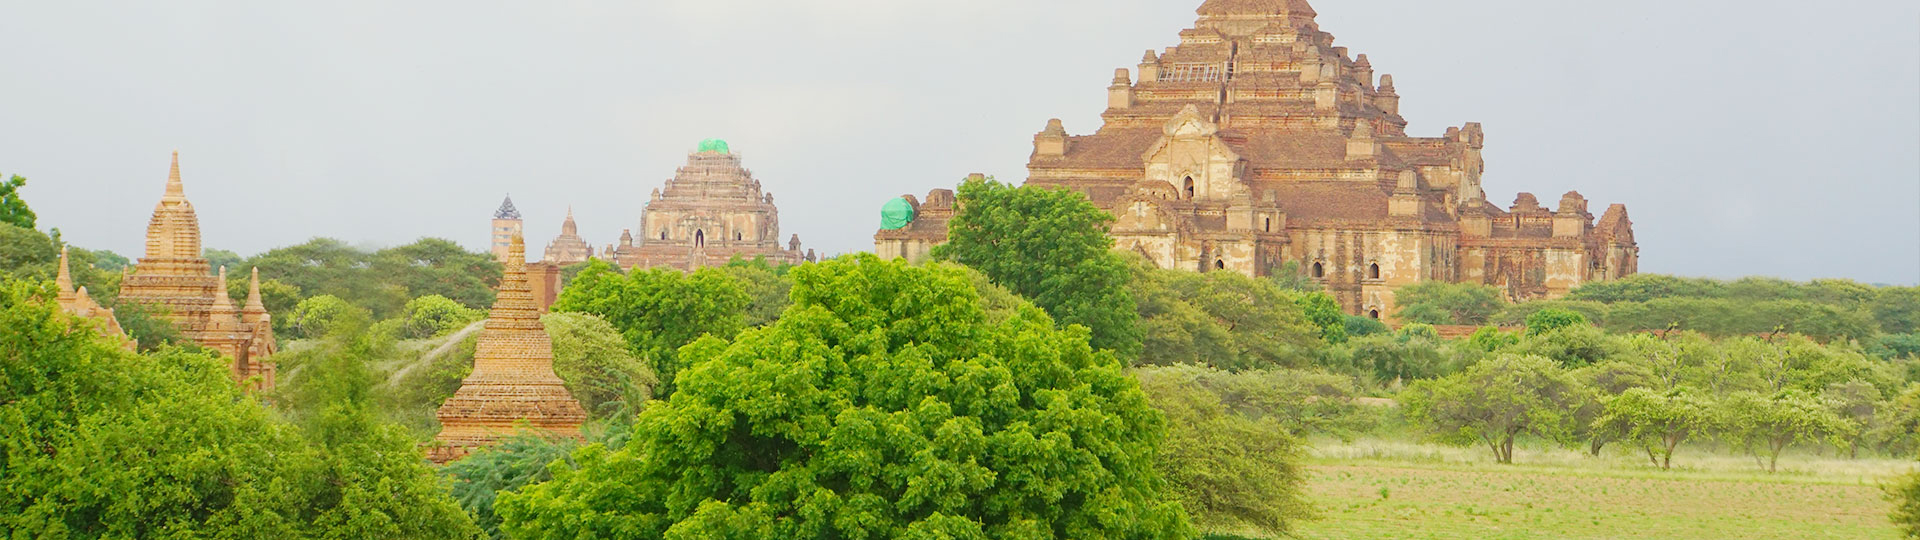 Bagan – the most mysterious city in Myanmar